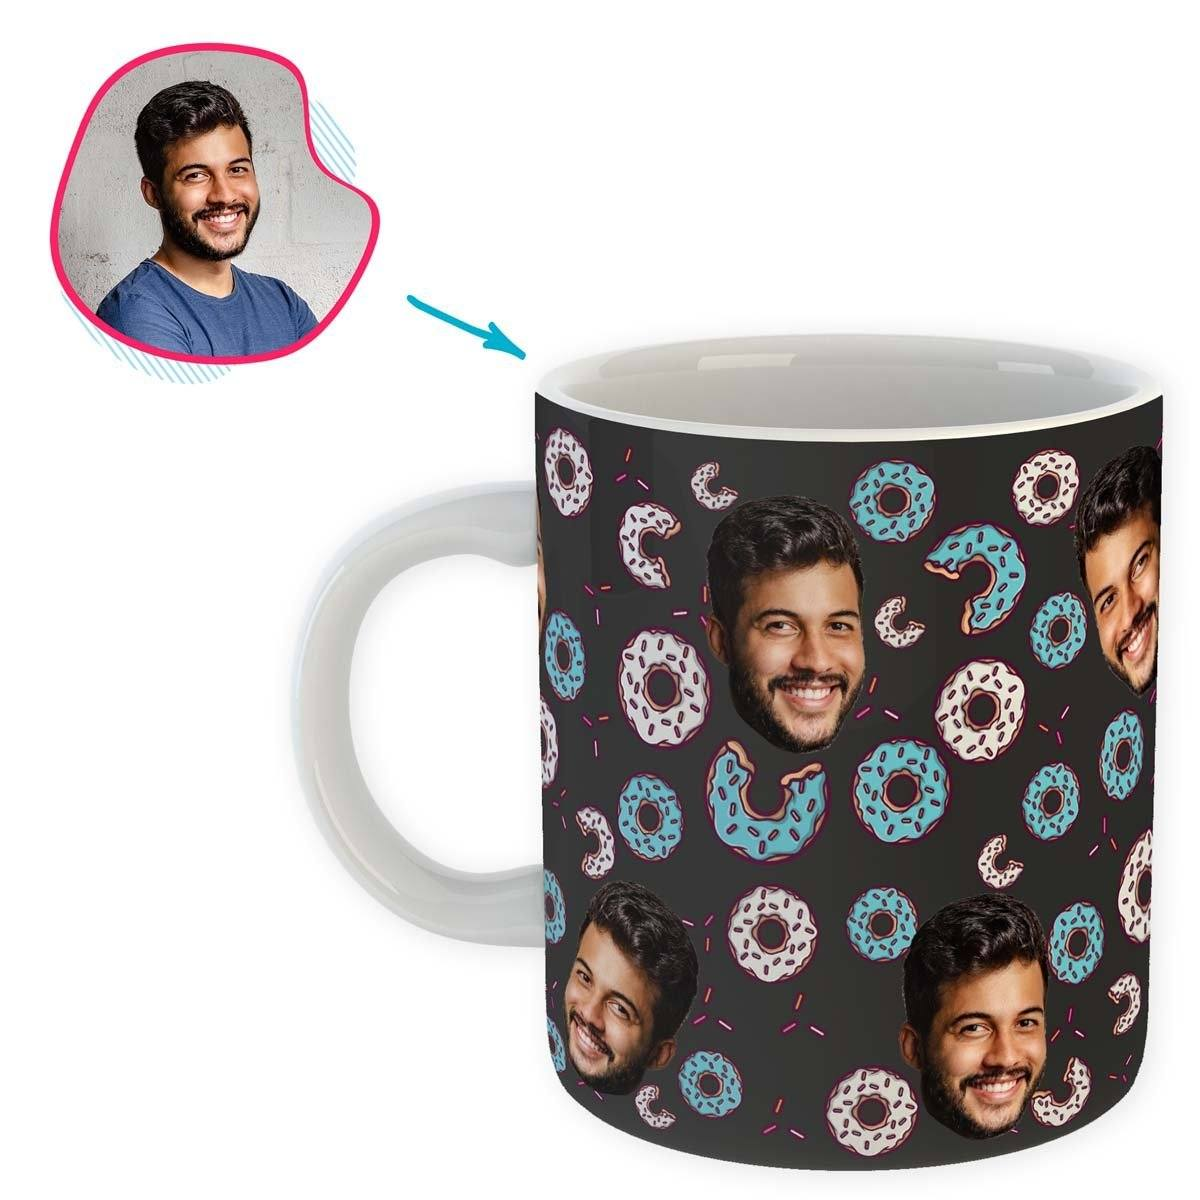 dark Donuts mug personalized with photo of face printed on it